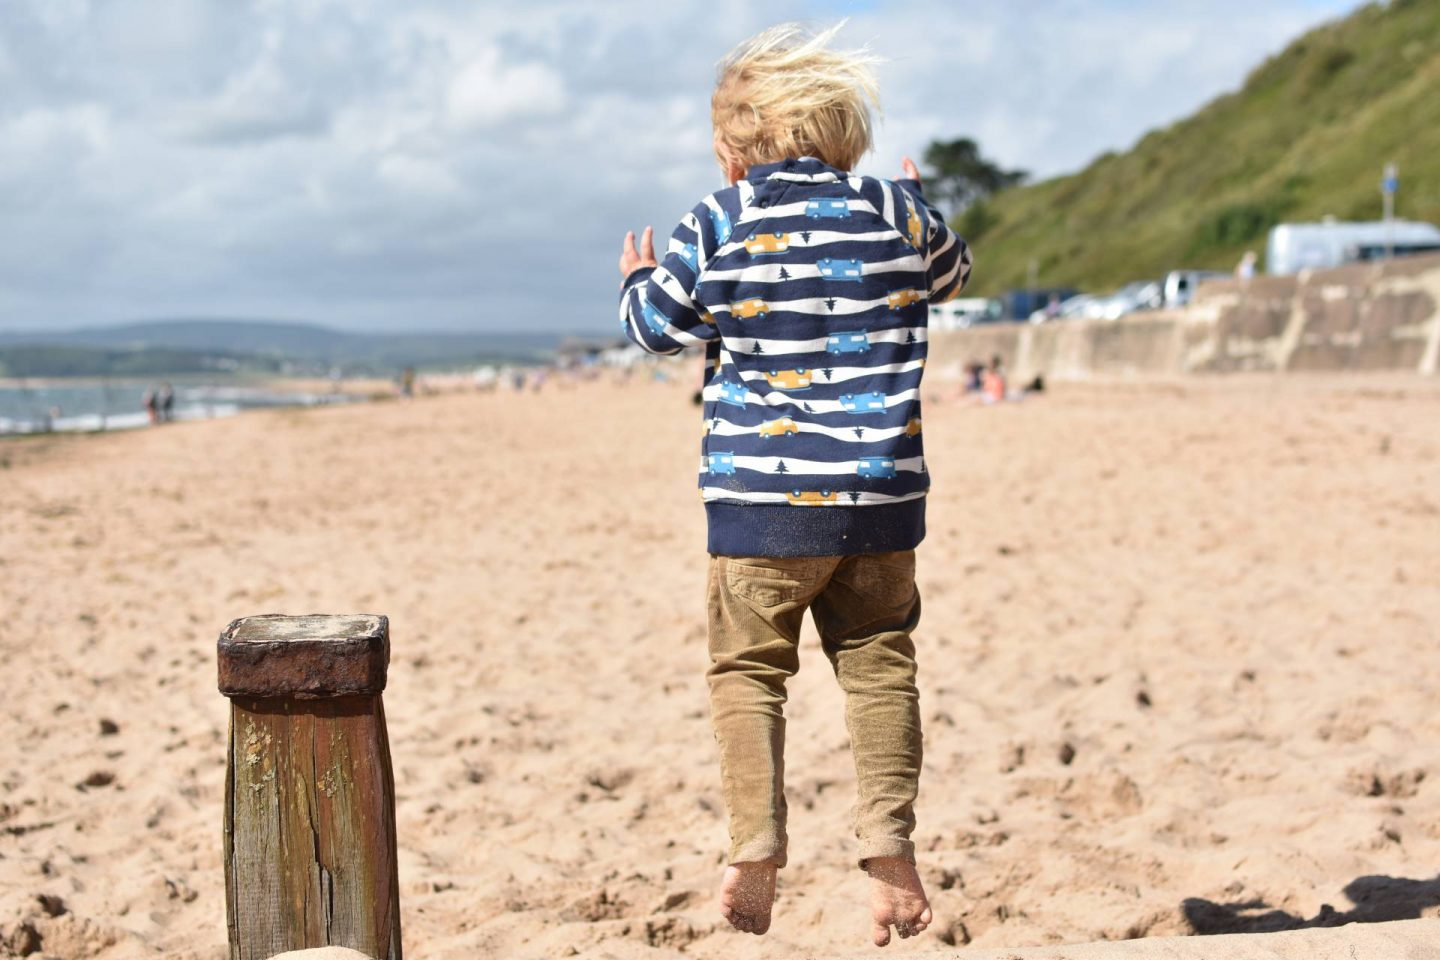 We're part of the Frugi family so showcasing this Rex boy's jumper, they're organic clothes are some of the cutest toddler fashion around.